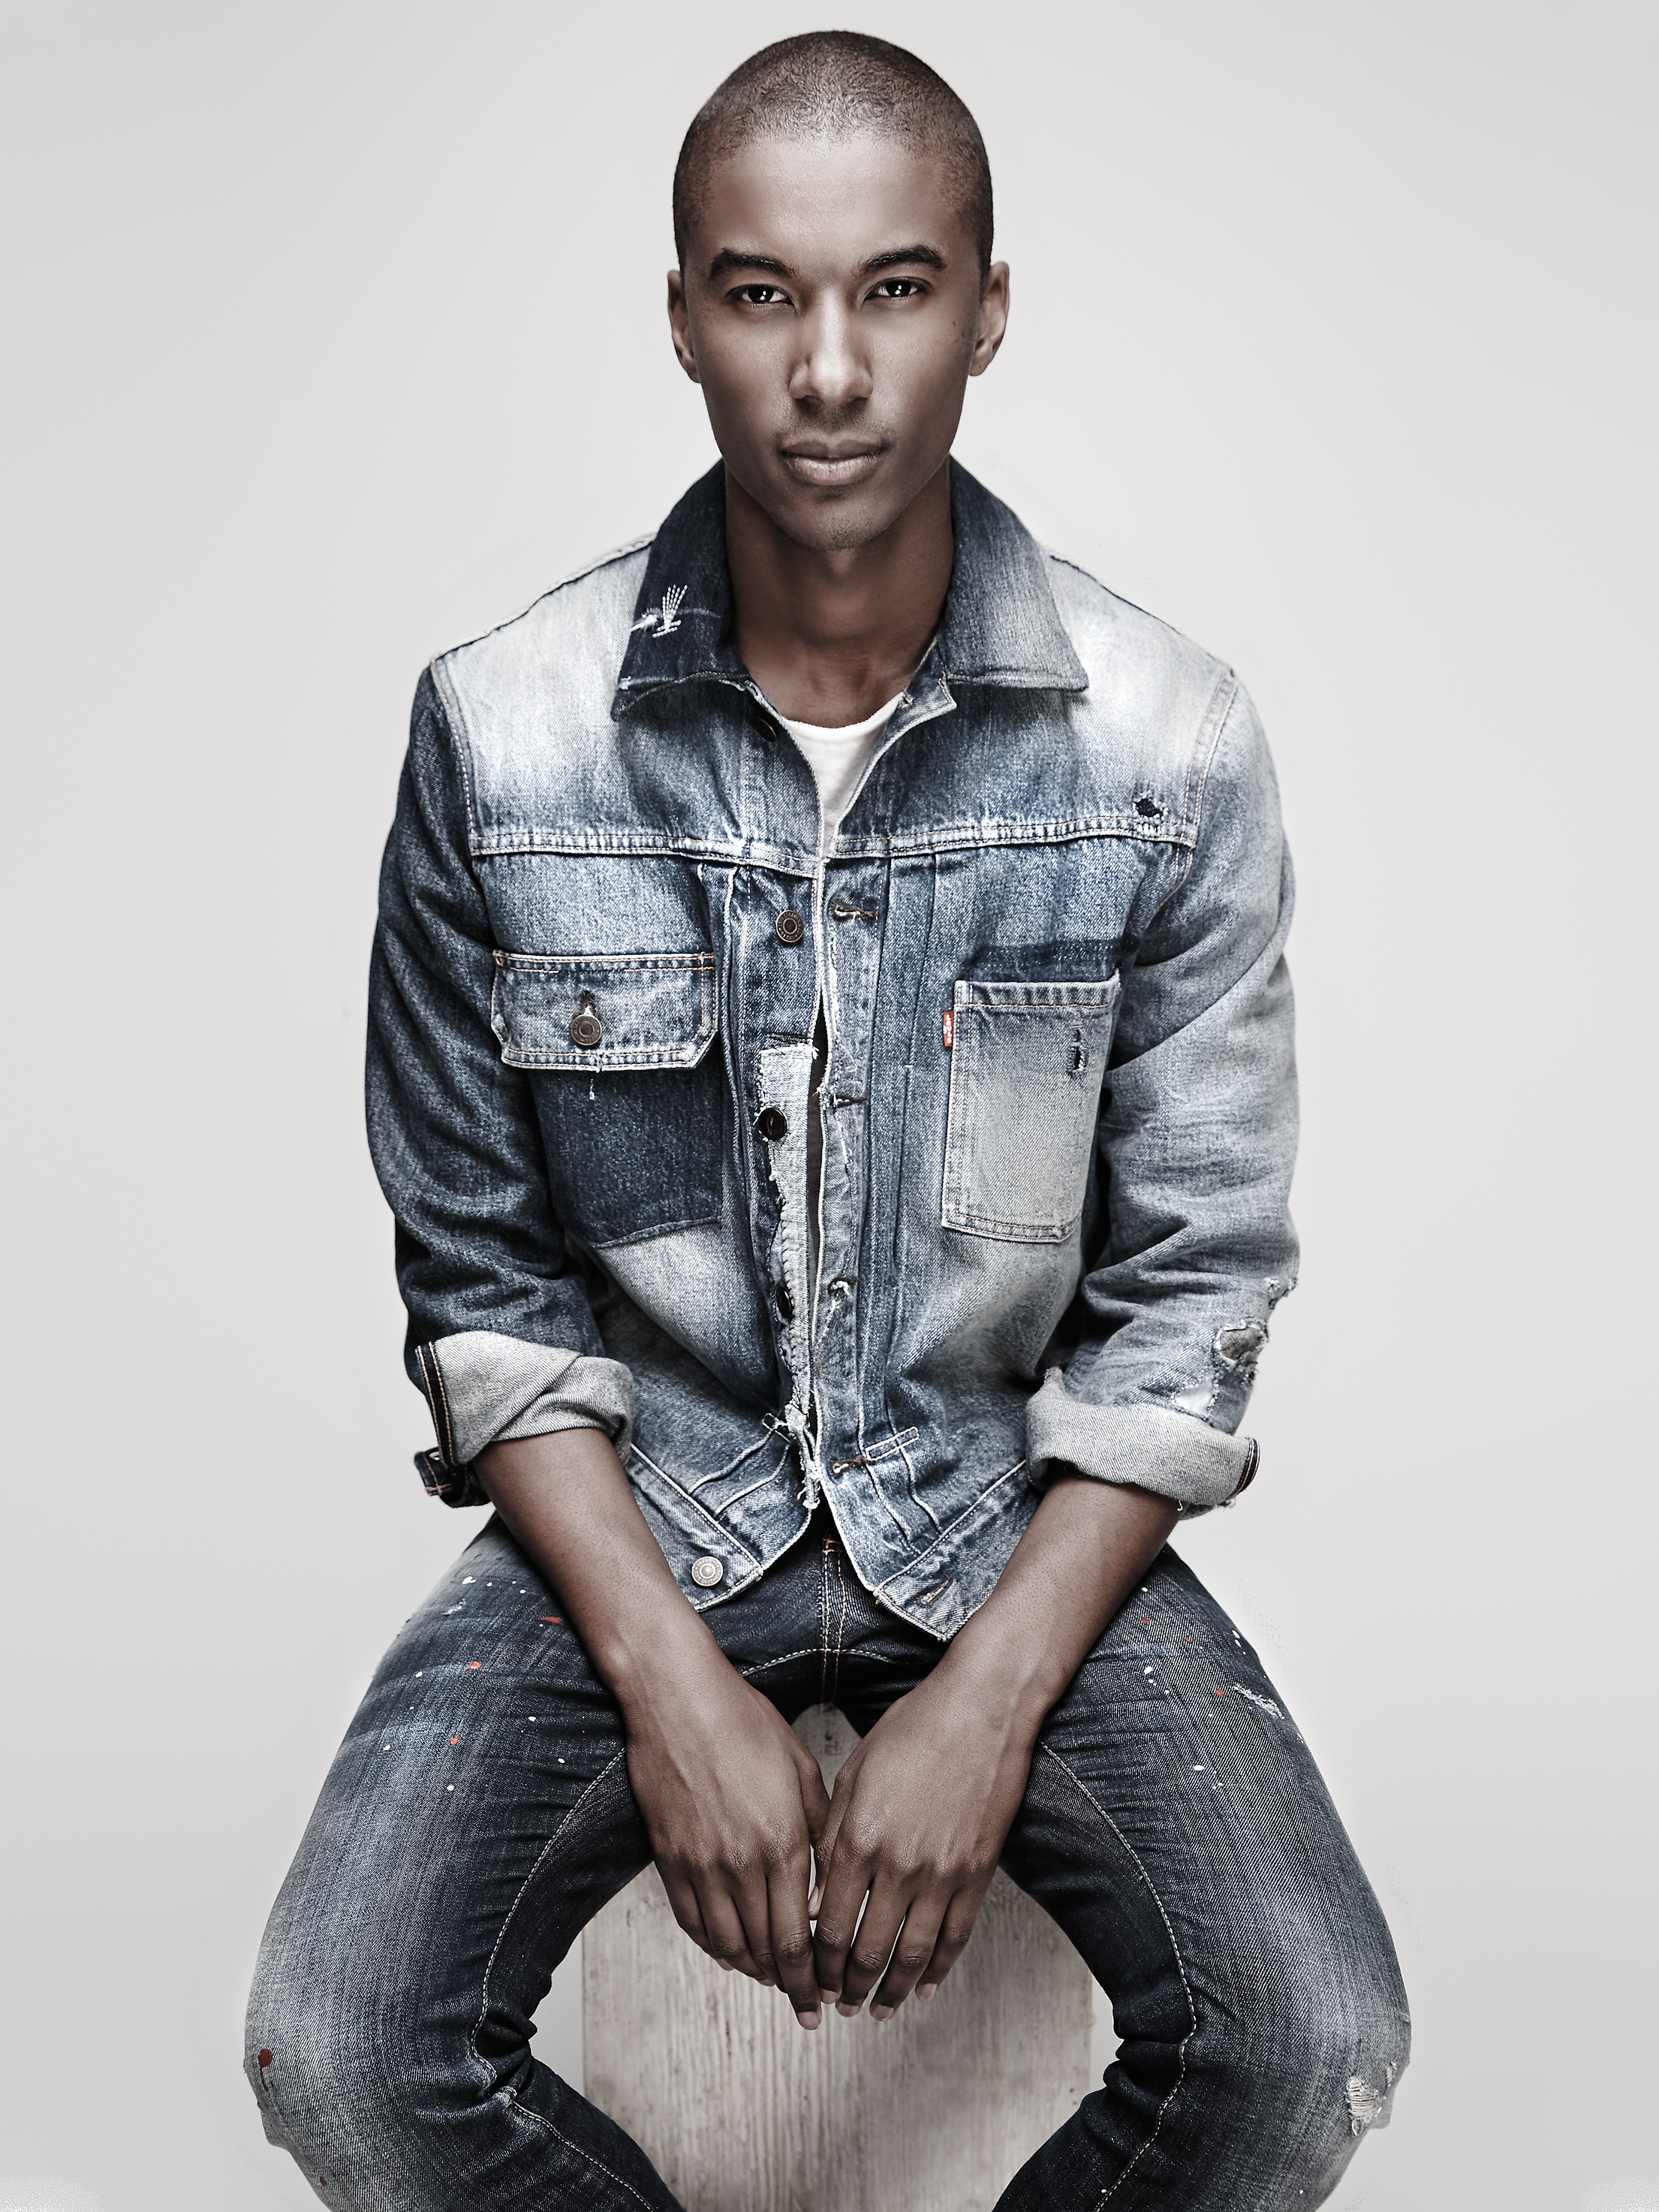 Claudio Monteiro for Gilt